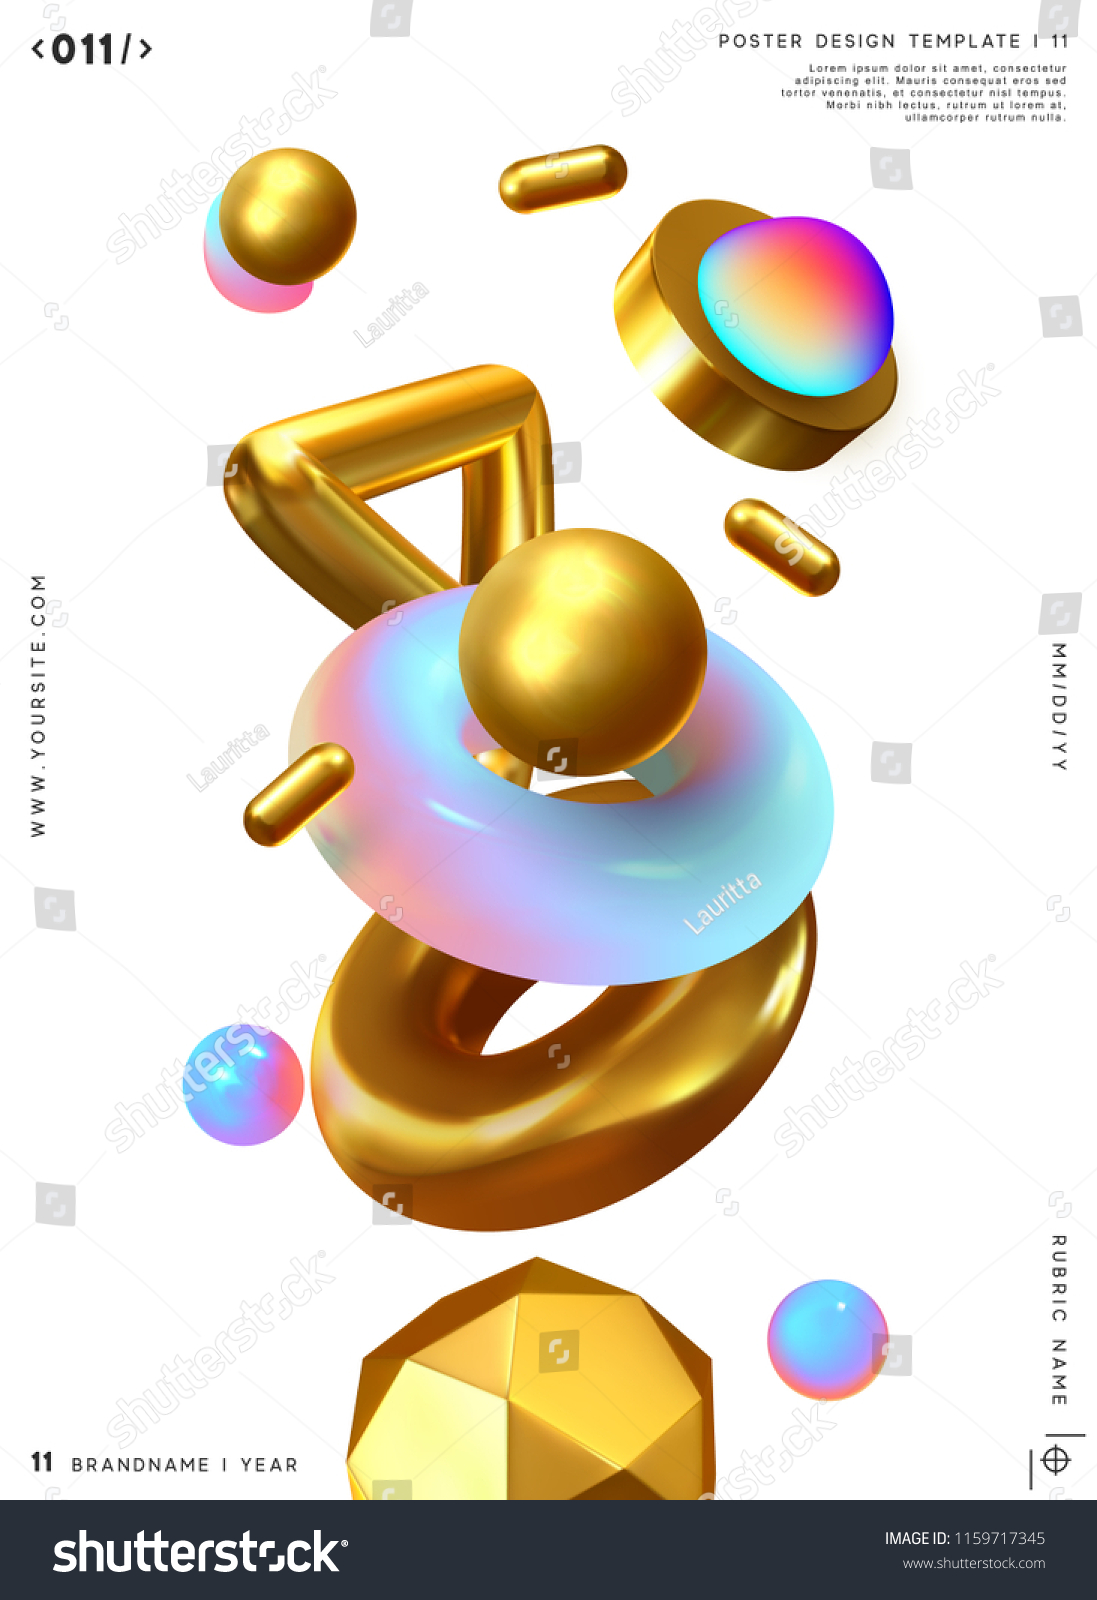 3d shape vector minimal poster. Abstract background with golden geometric elements. #1159717345